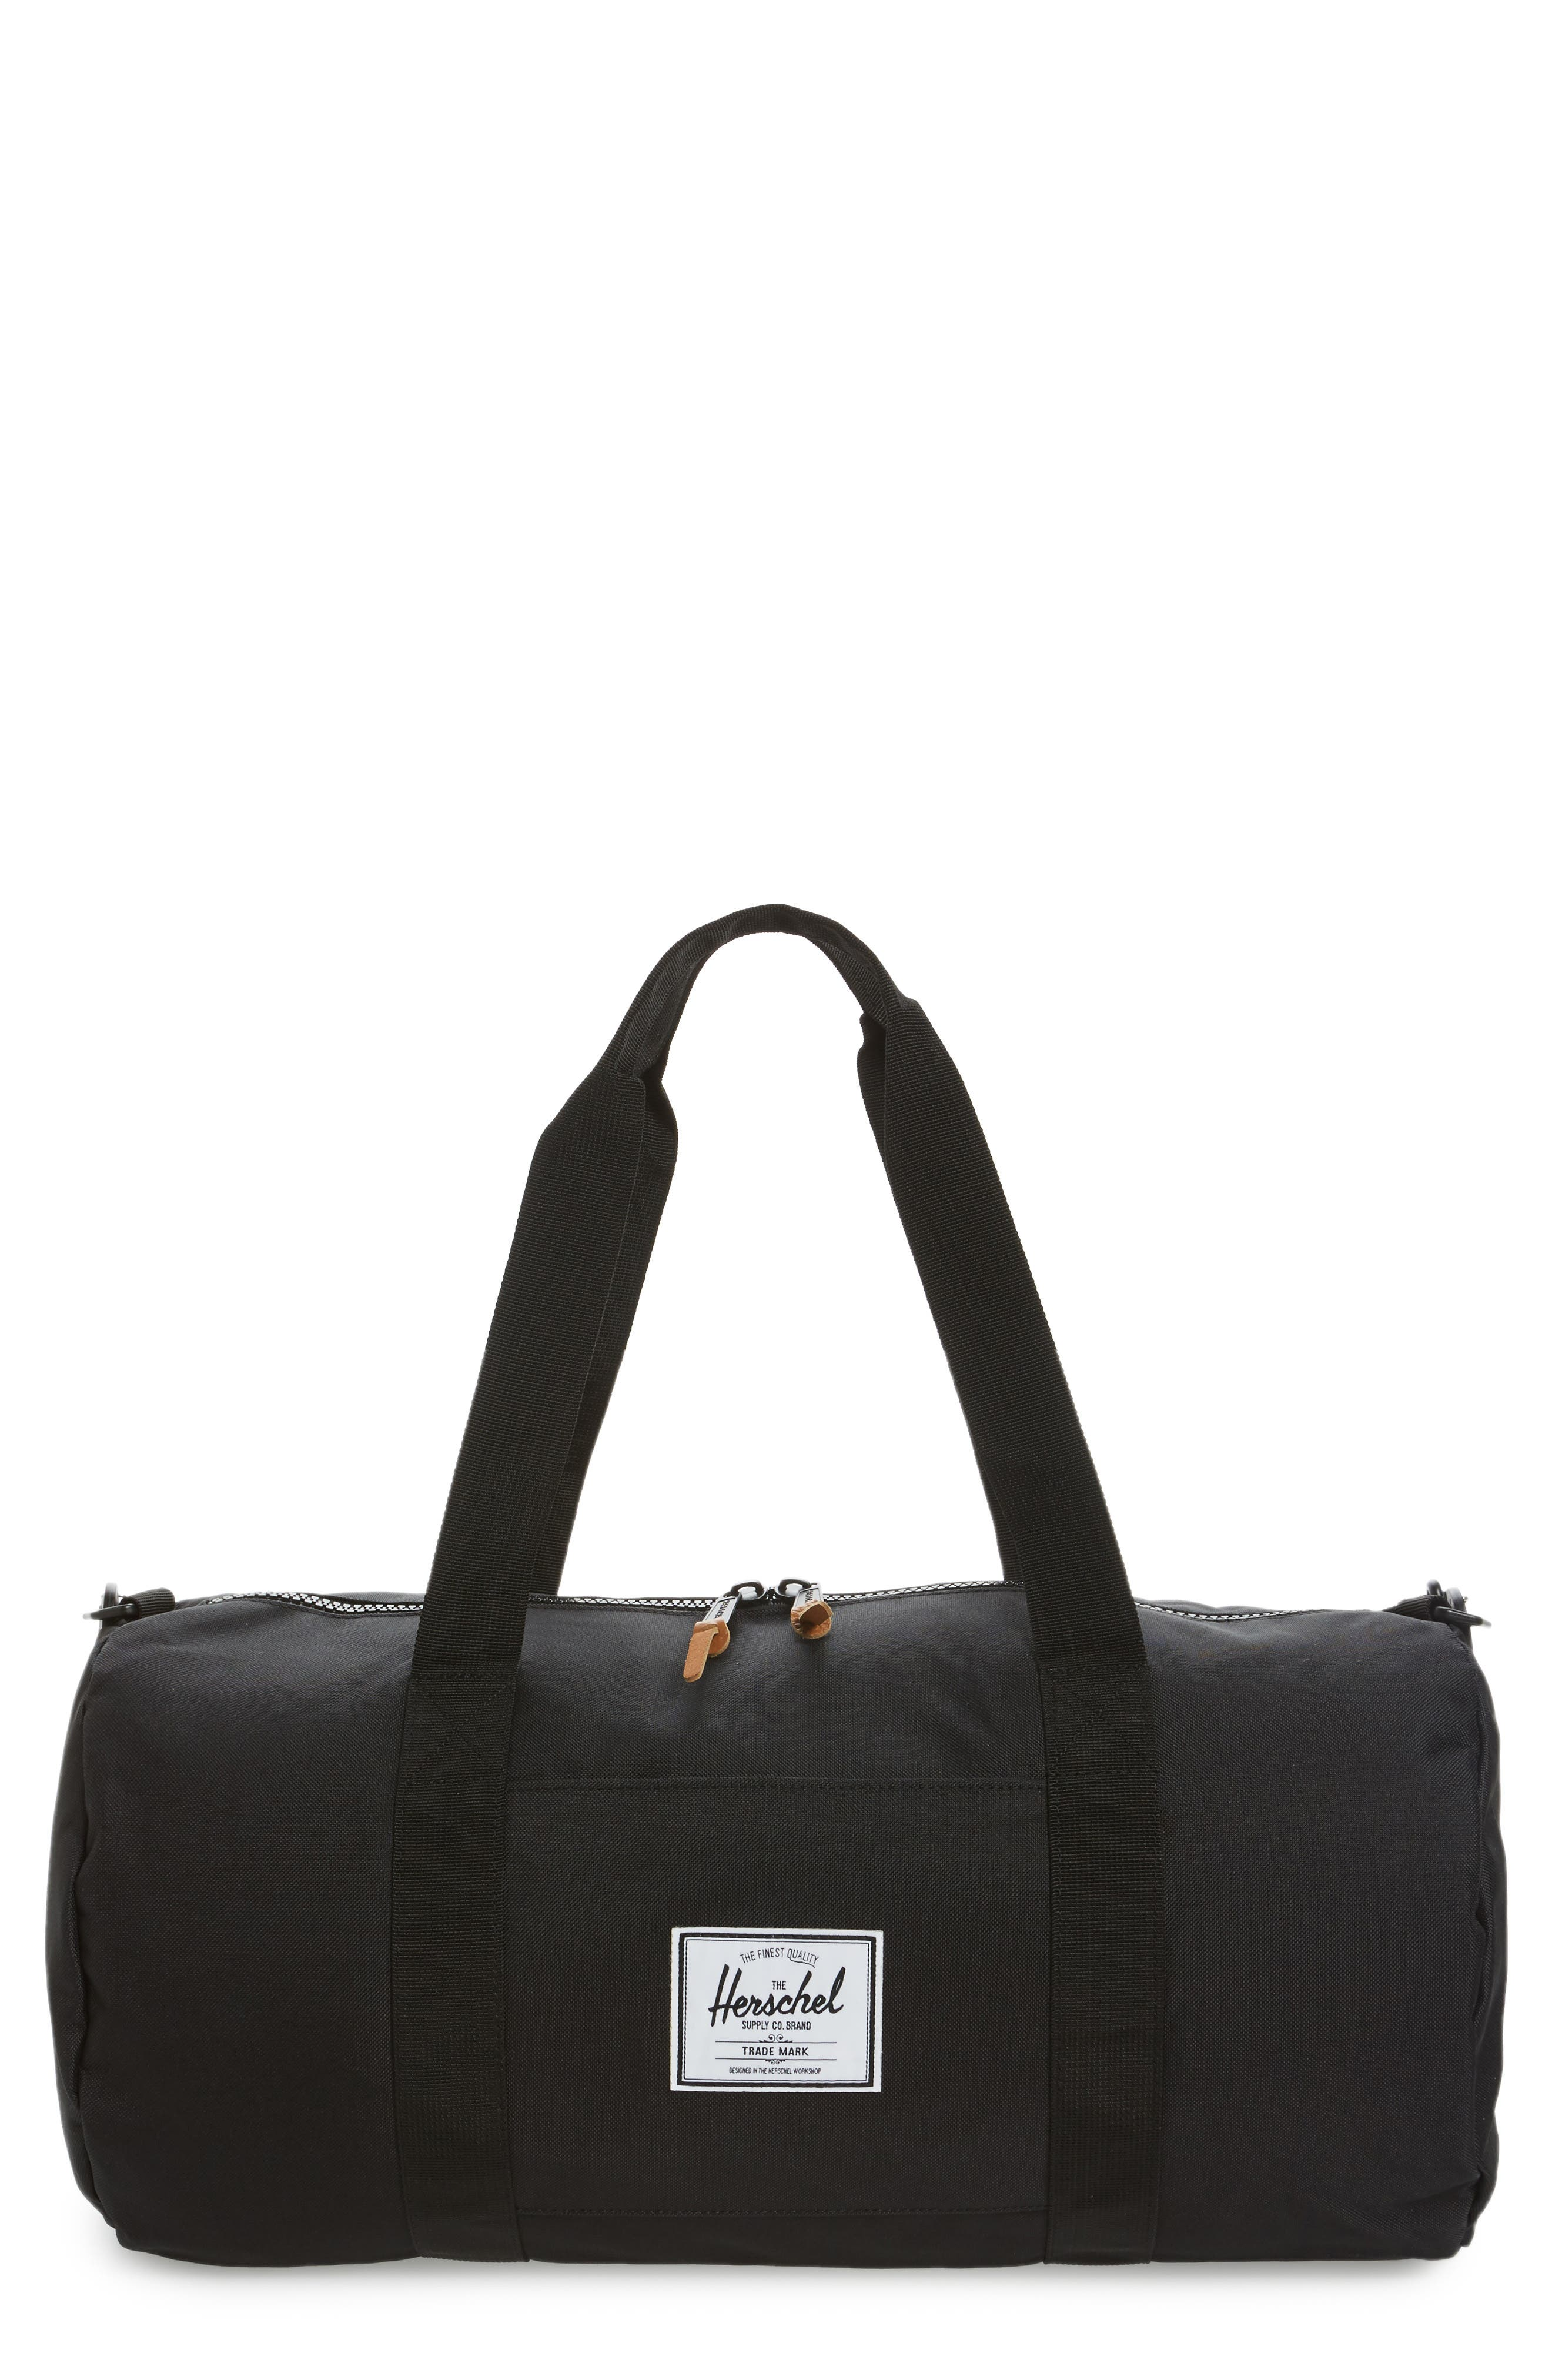 Herschel Supply Co. Sutton Mid Duffel Bag